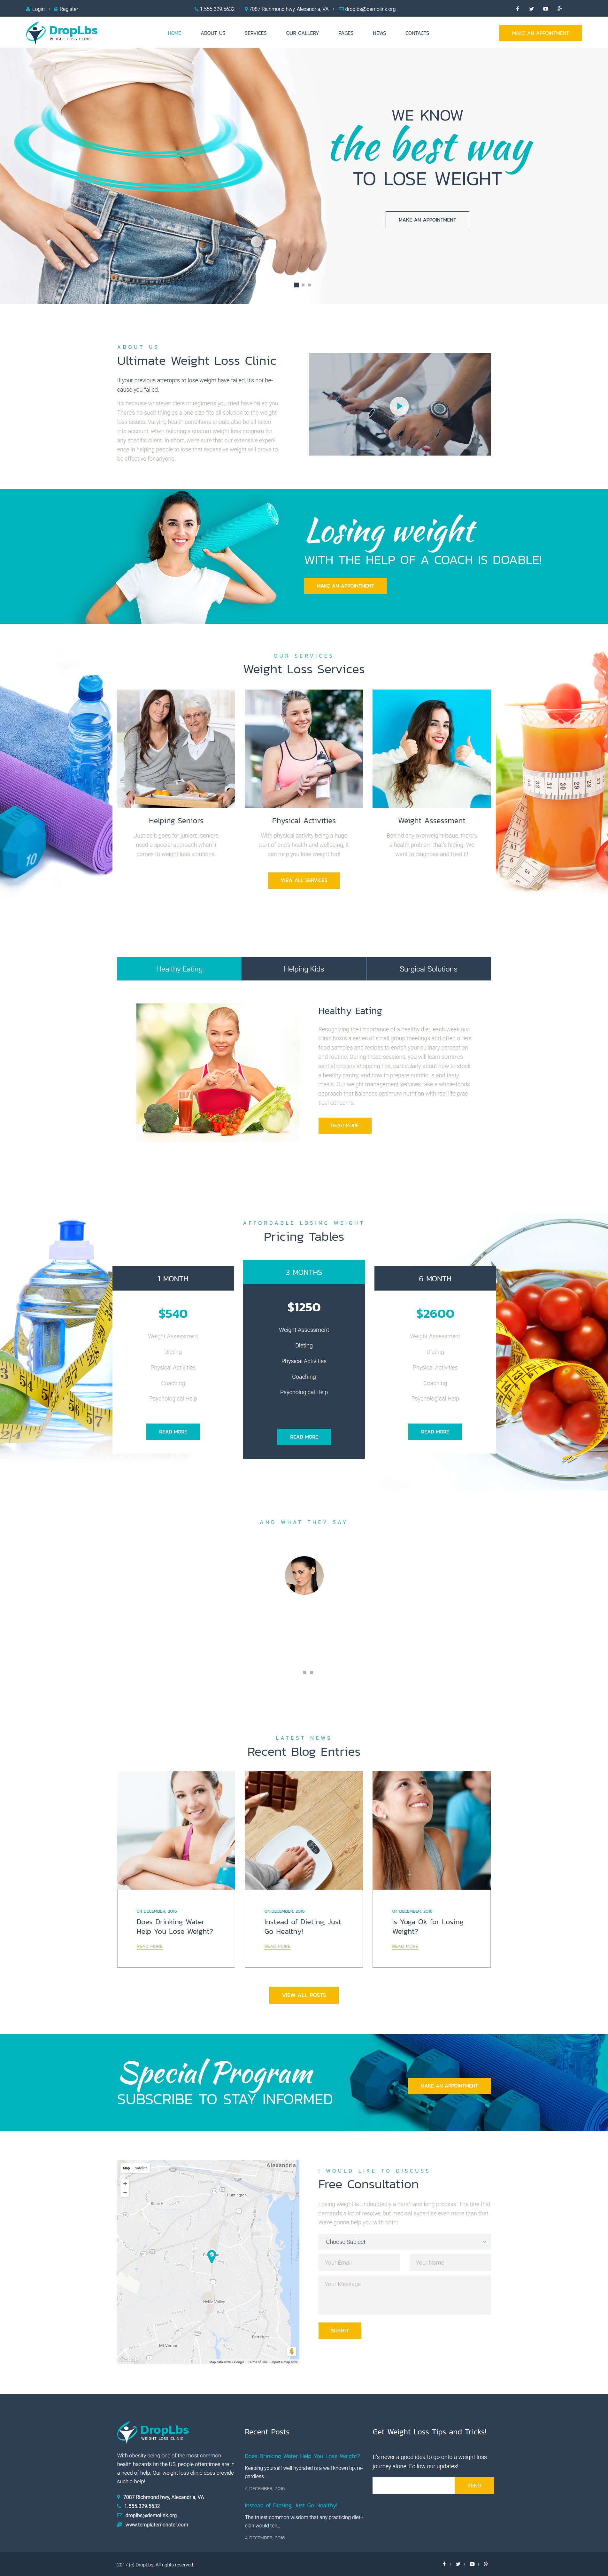 DropLbs - Weight Loss Clinic Responsive WordPress Theme - screenshot